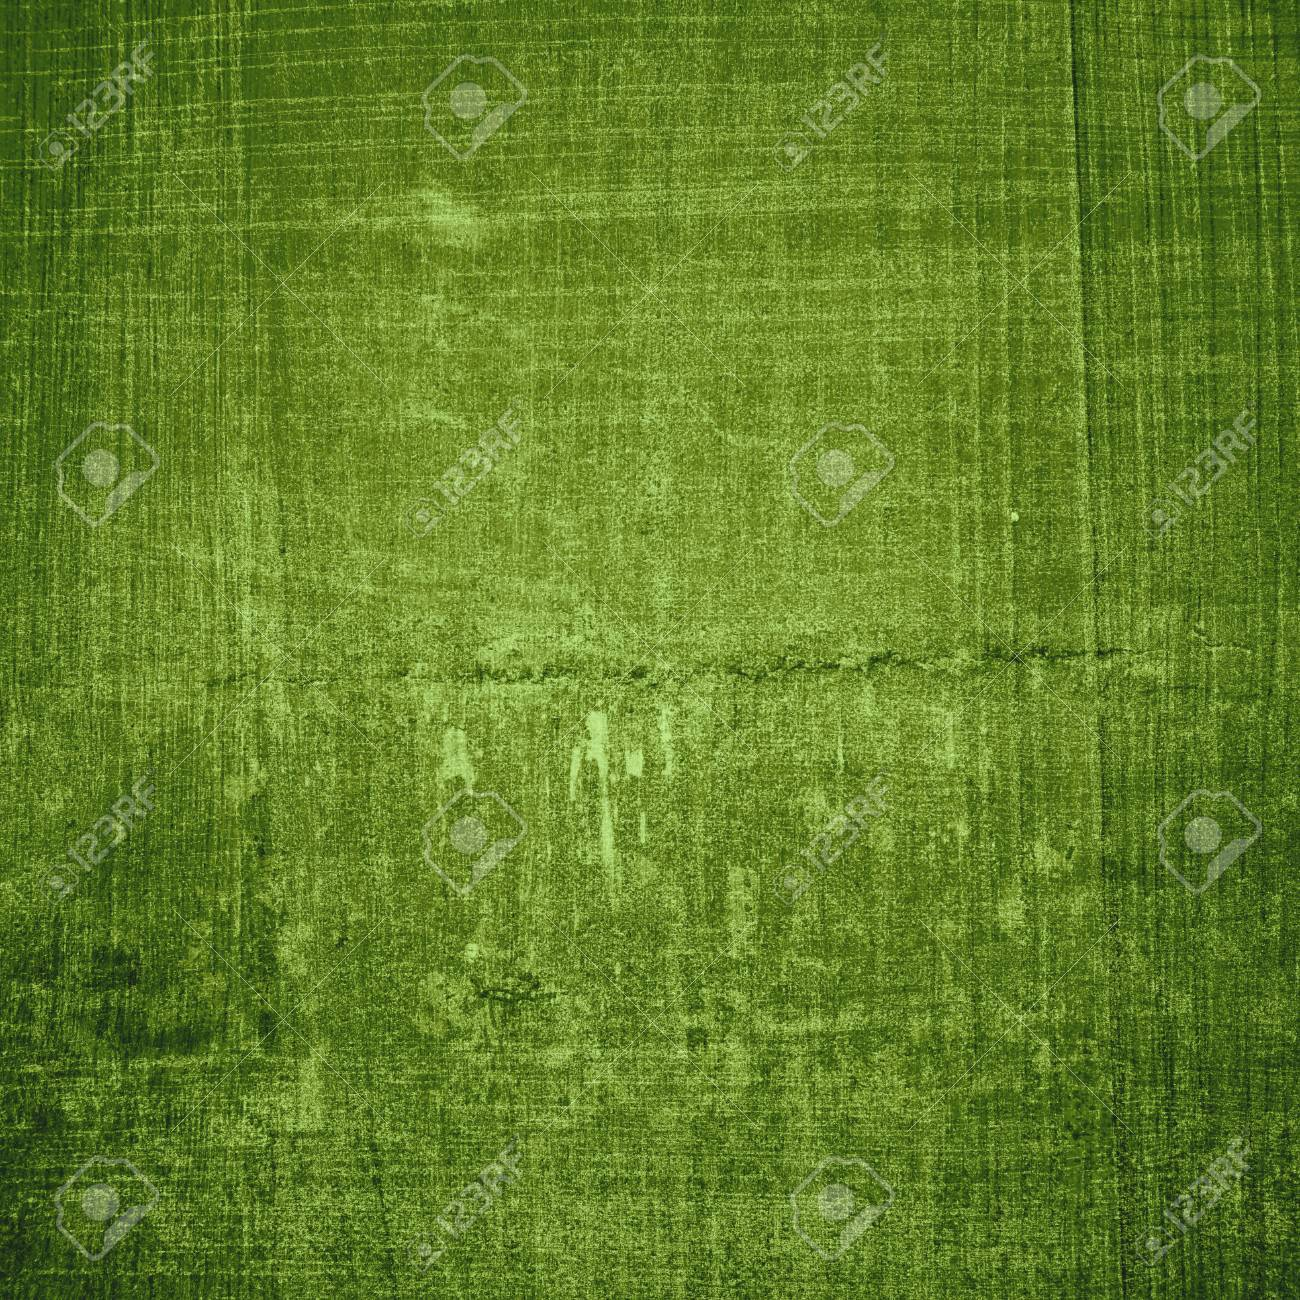 art abstract grunge textured background Stock Photo - 22560469